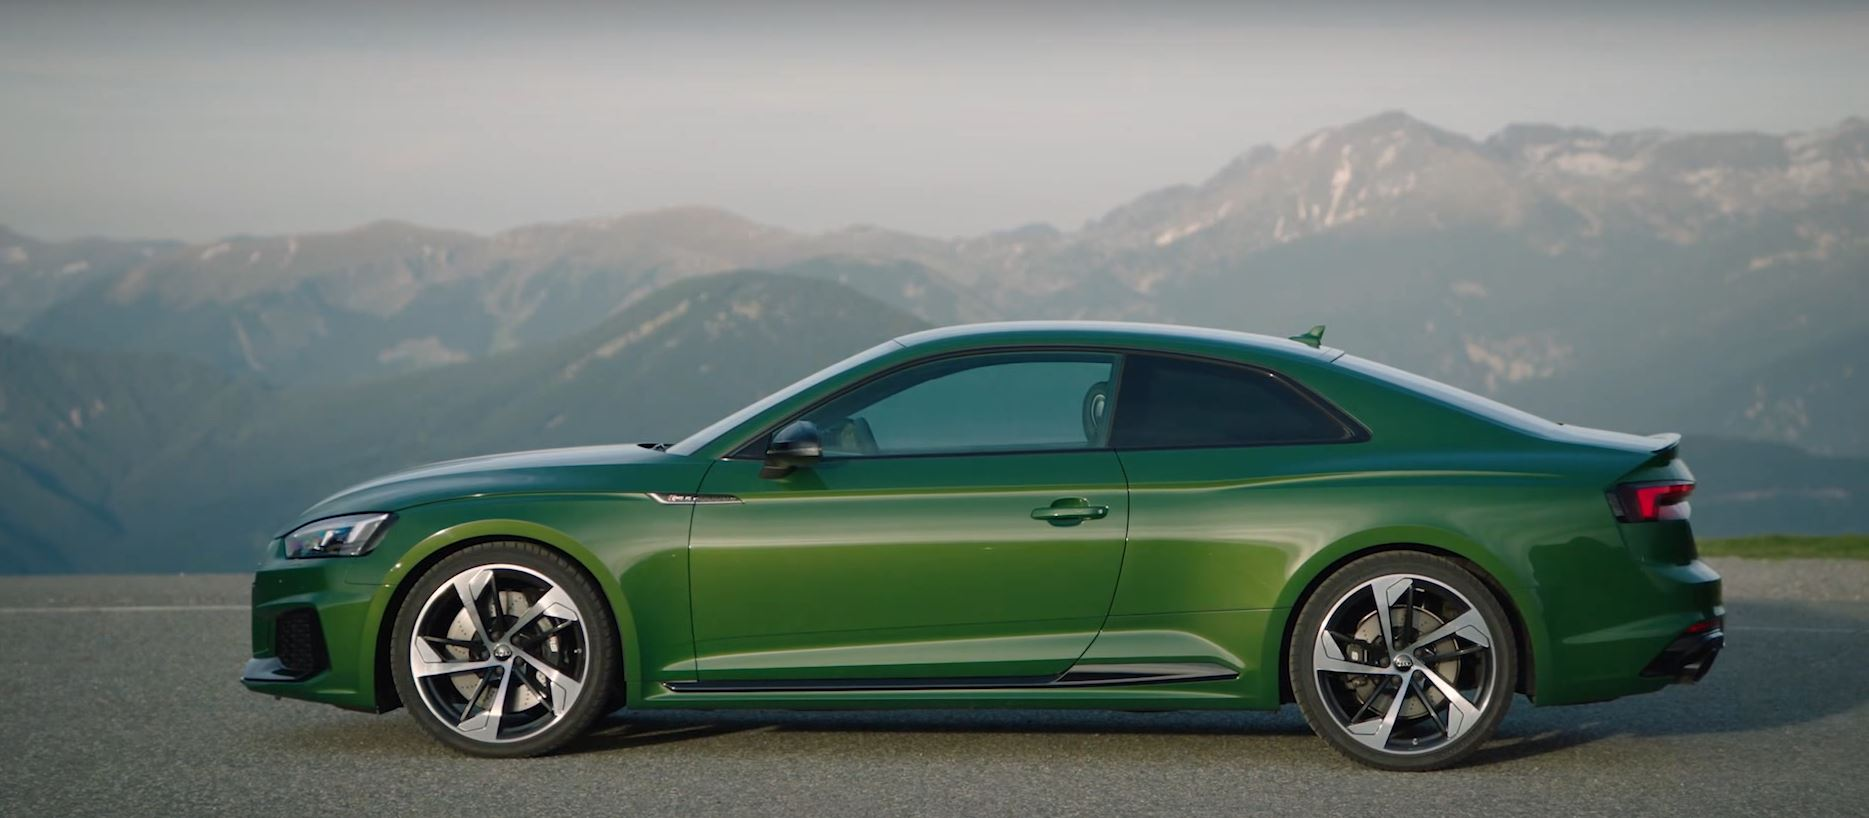 Rs5 In Misano Red And Sonoma Green Get Extra Footage As